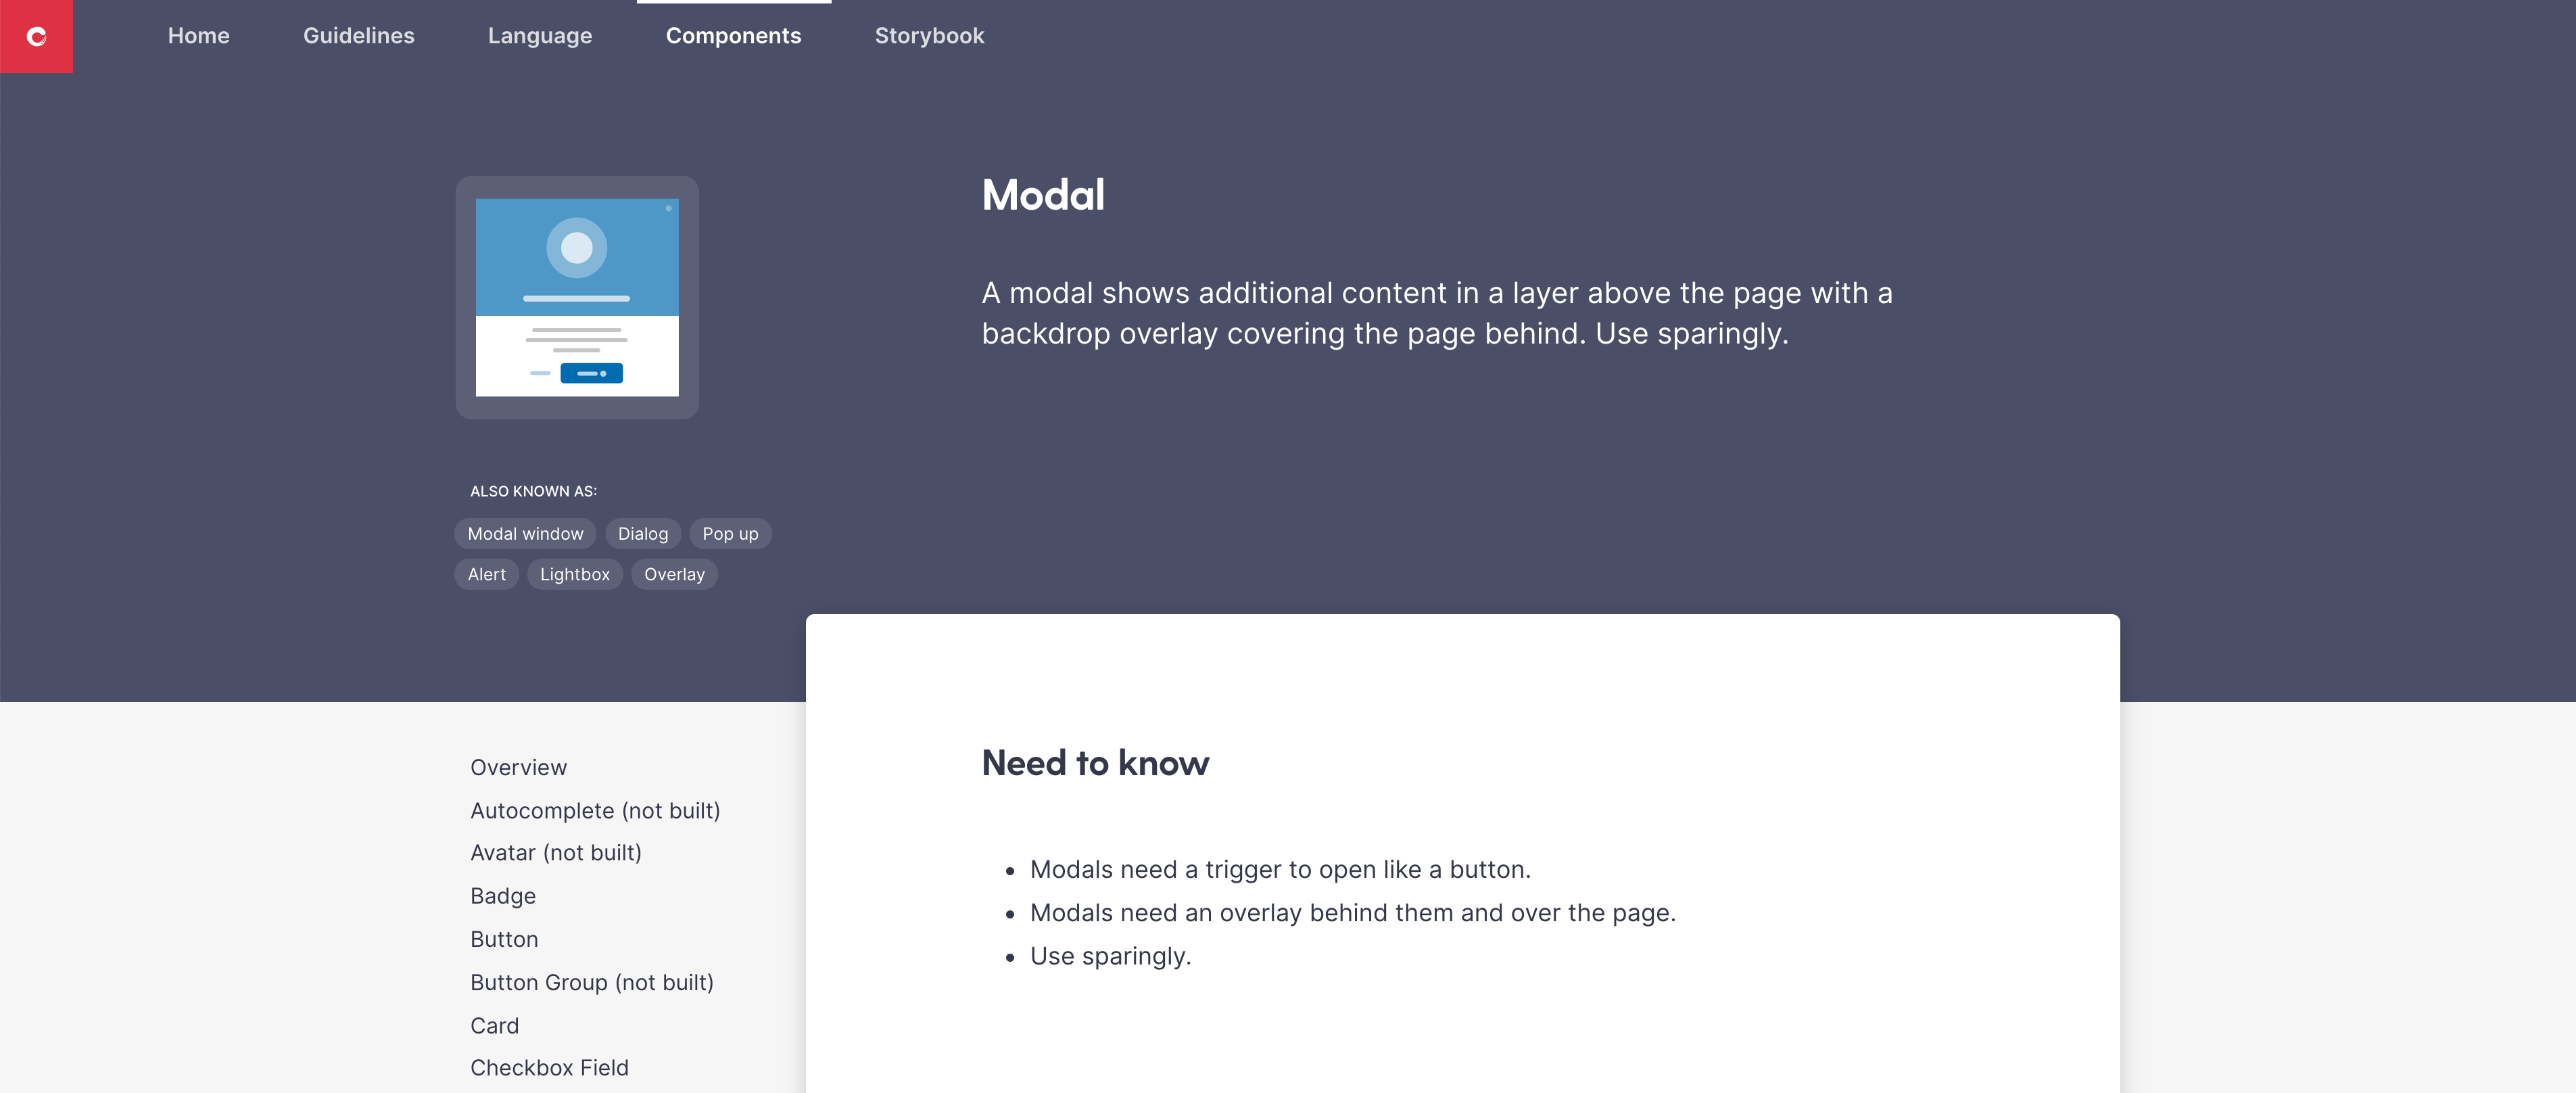 Modal component page on Kaizen Site. The Modal is also known as: Modal window, Dialog, Pop up, Alert, Lightbox, Overlay.